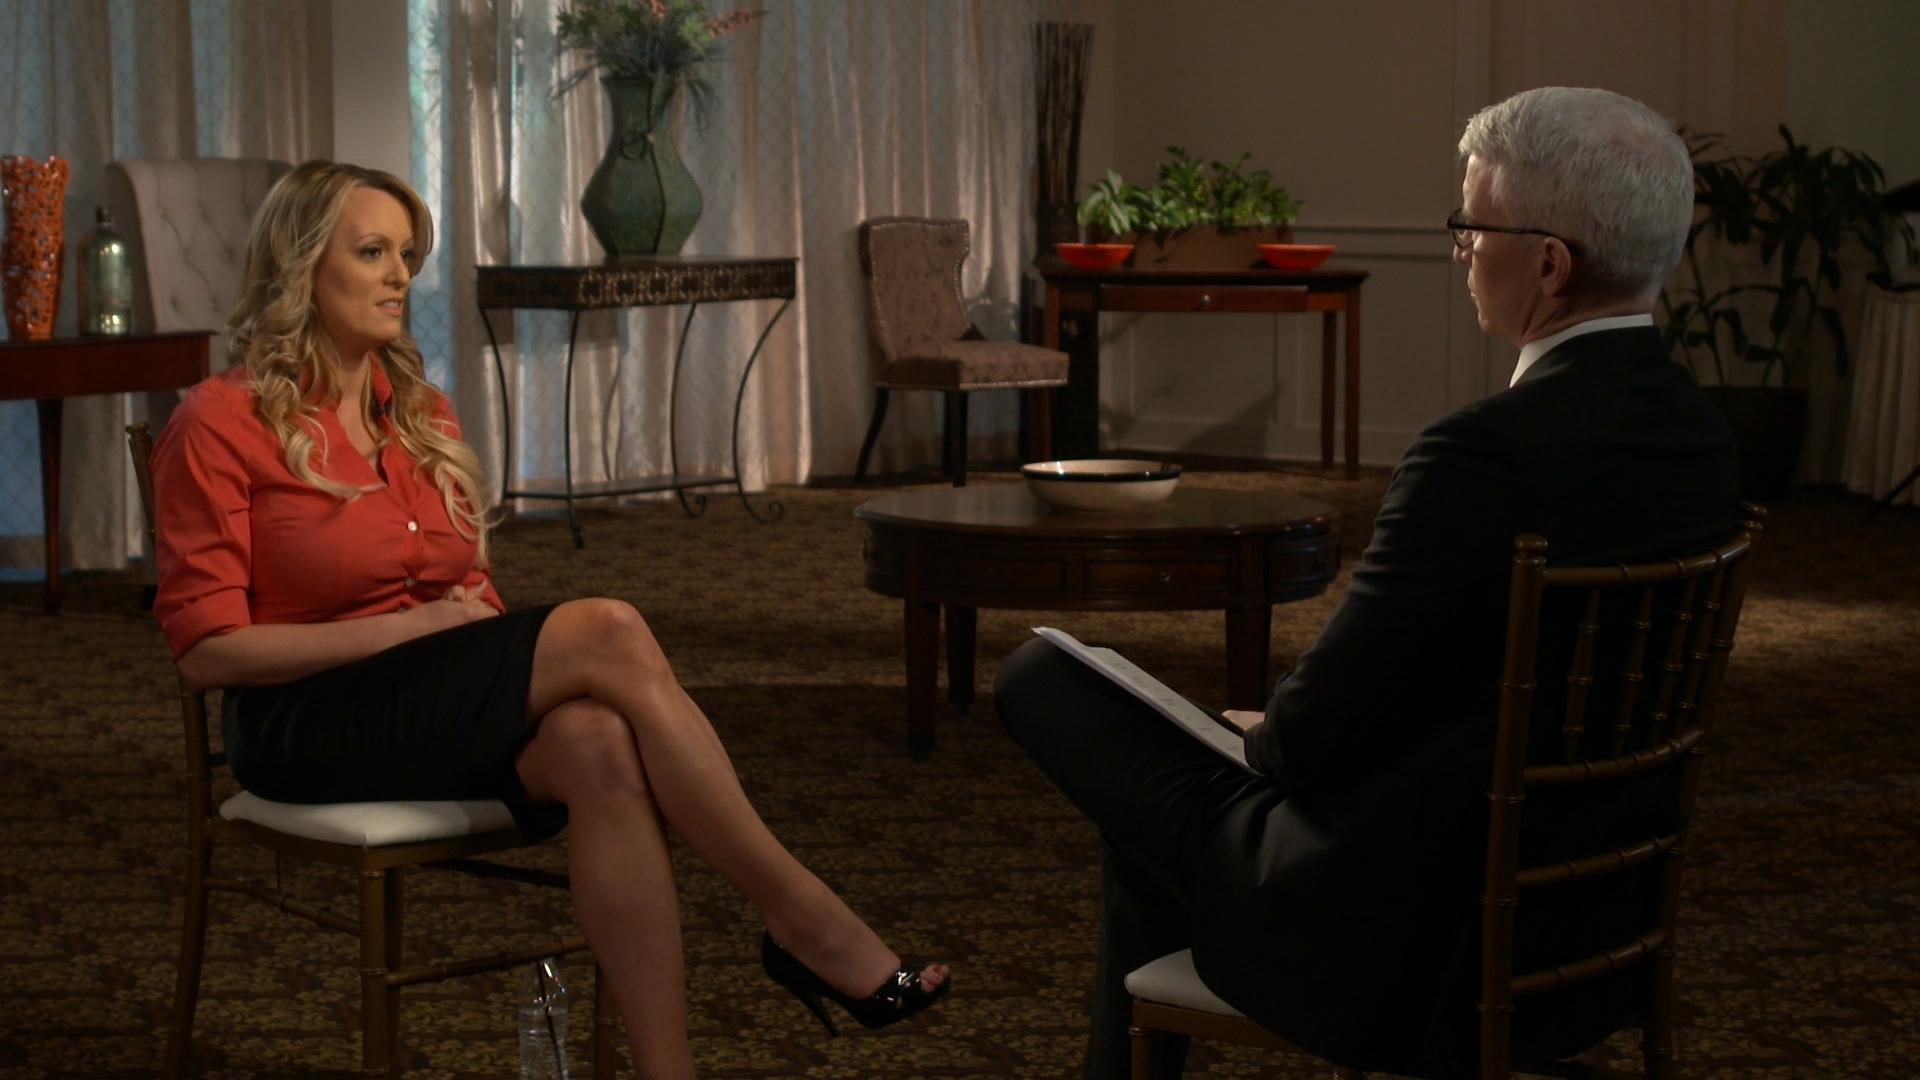 Stormy Daniels during her interview on '60 Minutes' with Anderson Cooper, March 2018. (Credit: CBS/Getty Images)